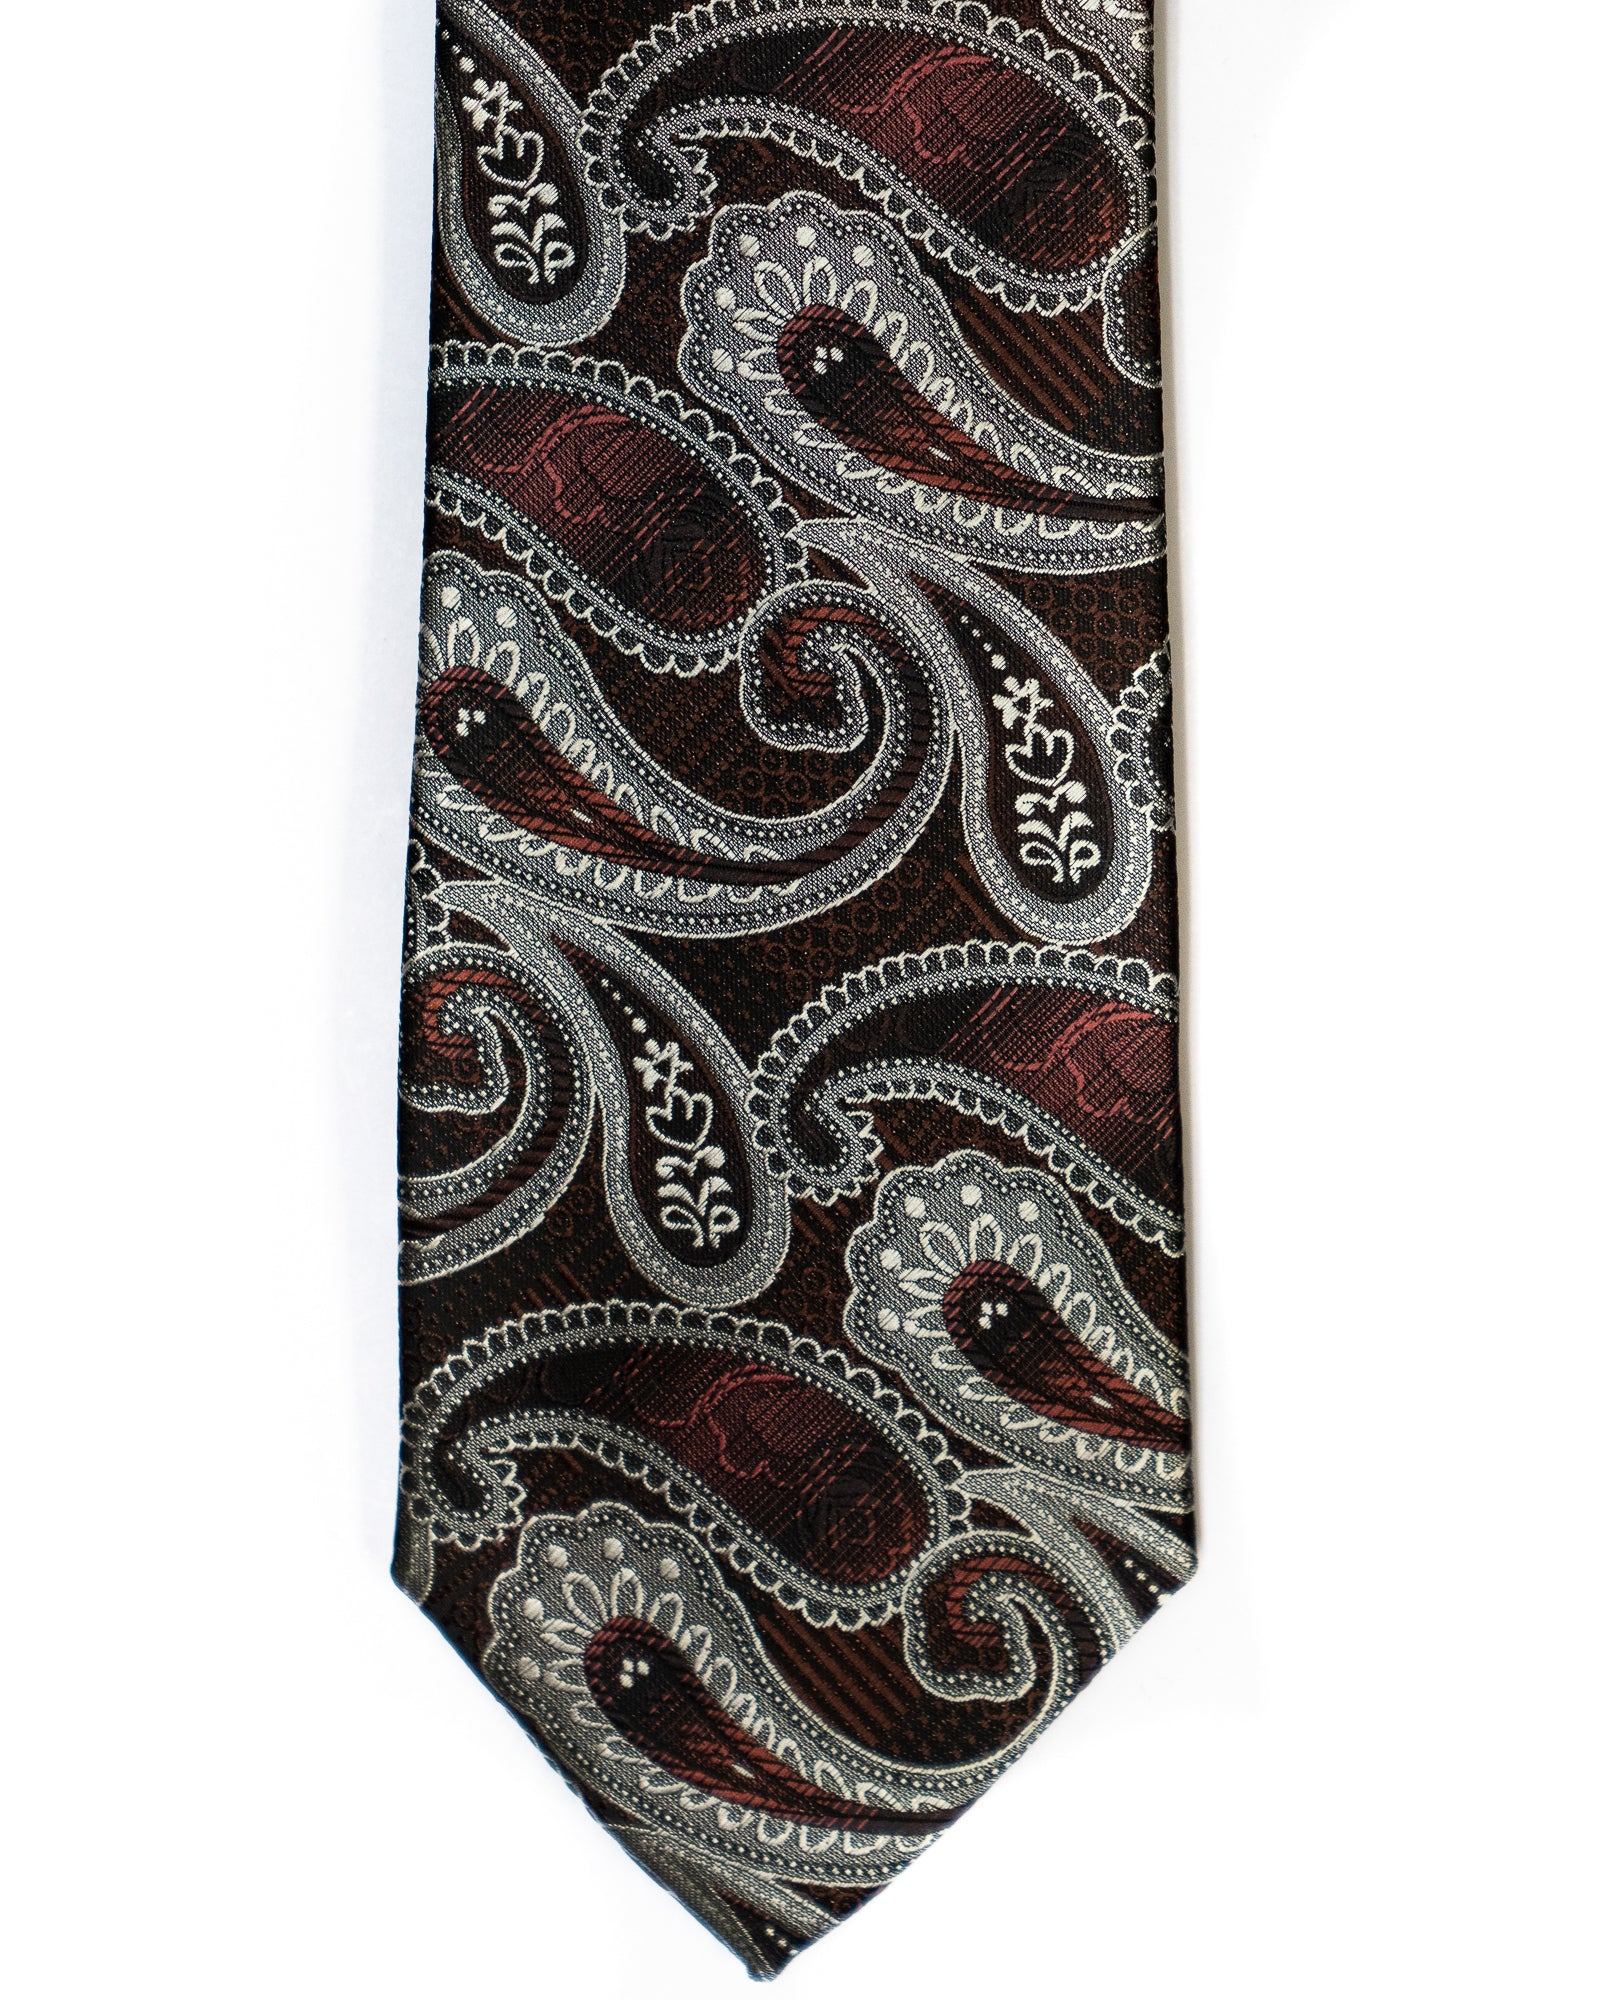 Venturi Uomo Paisley Tie in Burgundy with Grey - Rainwater's